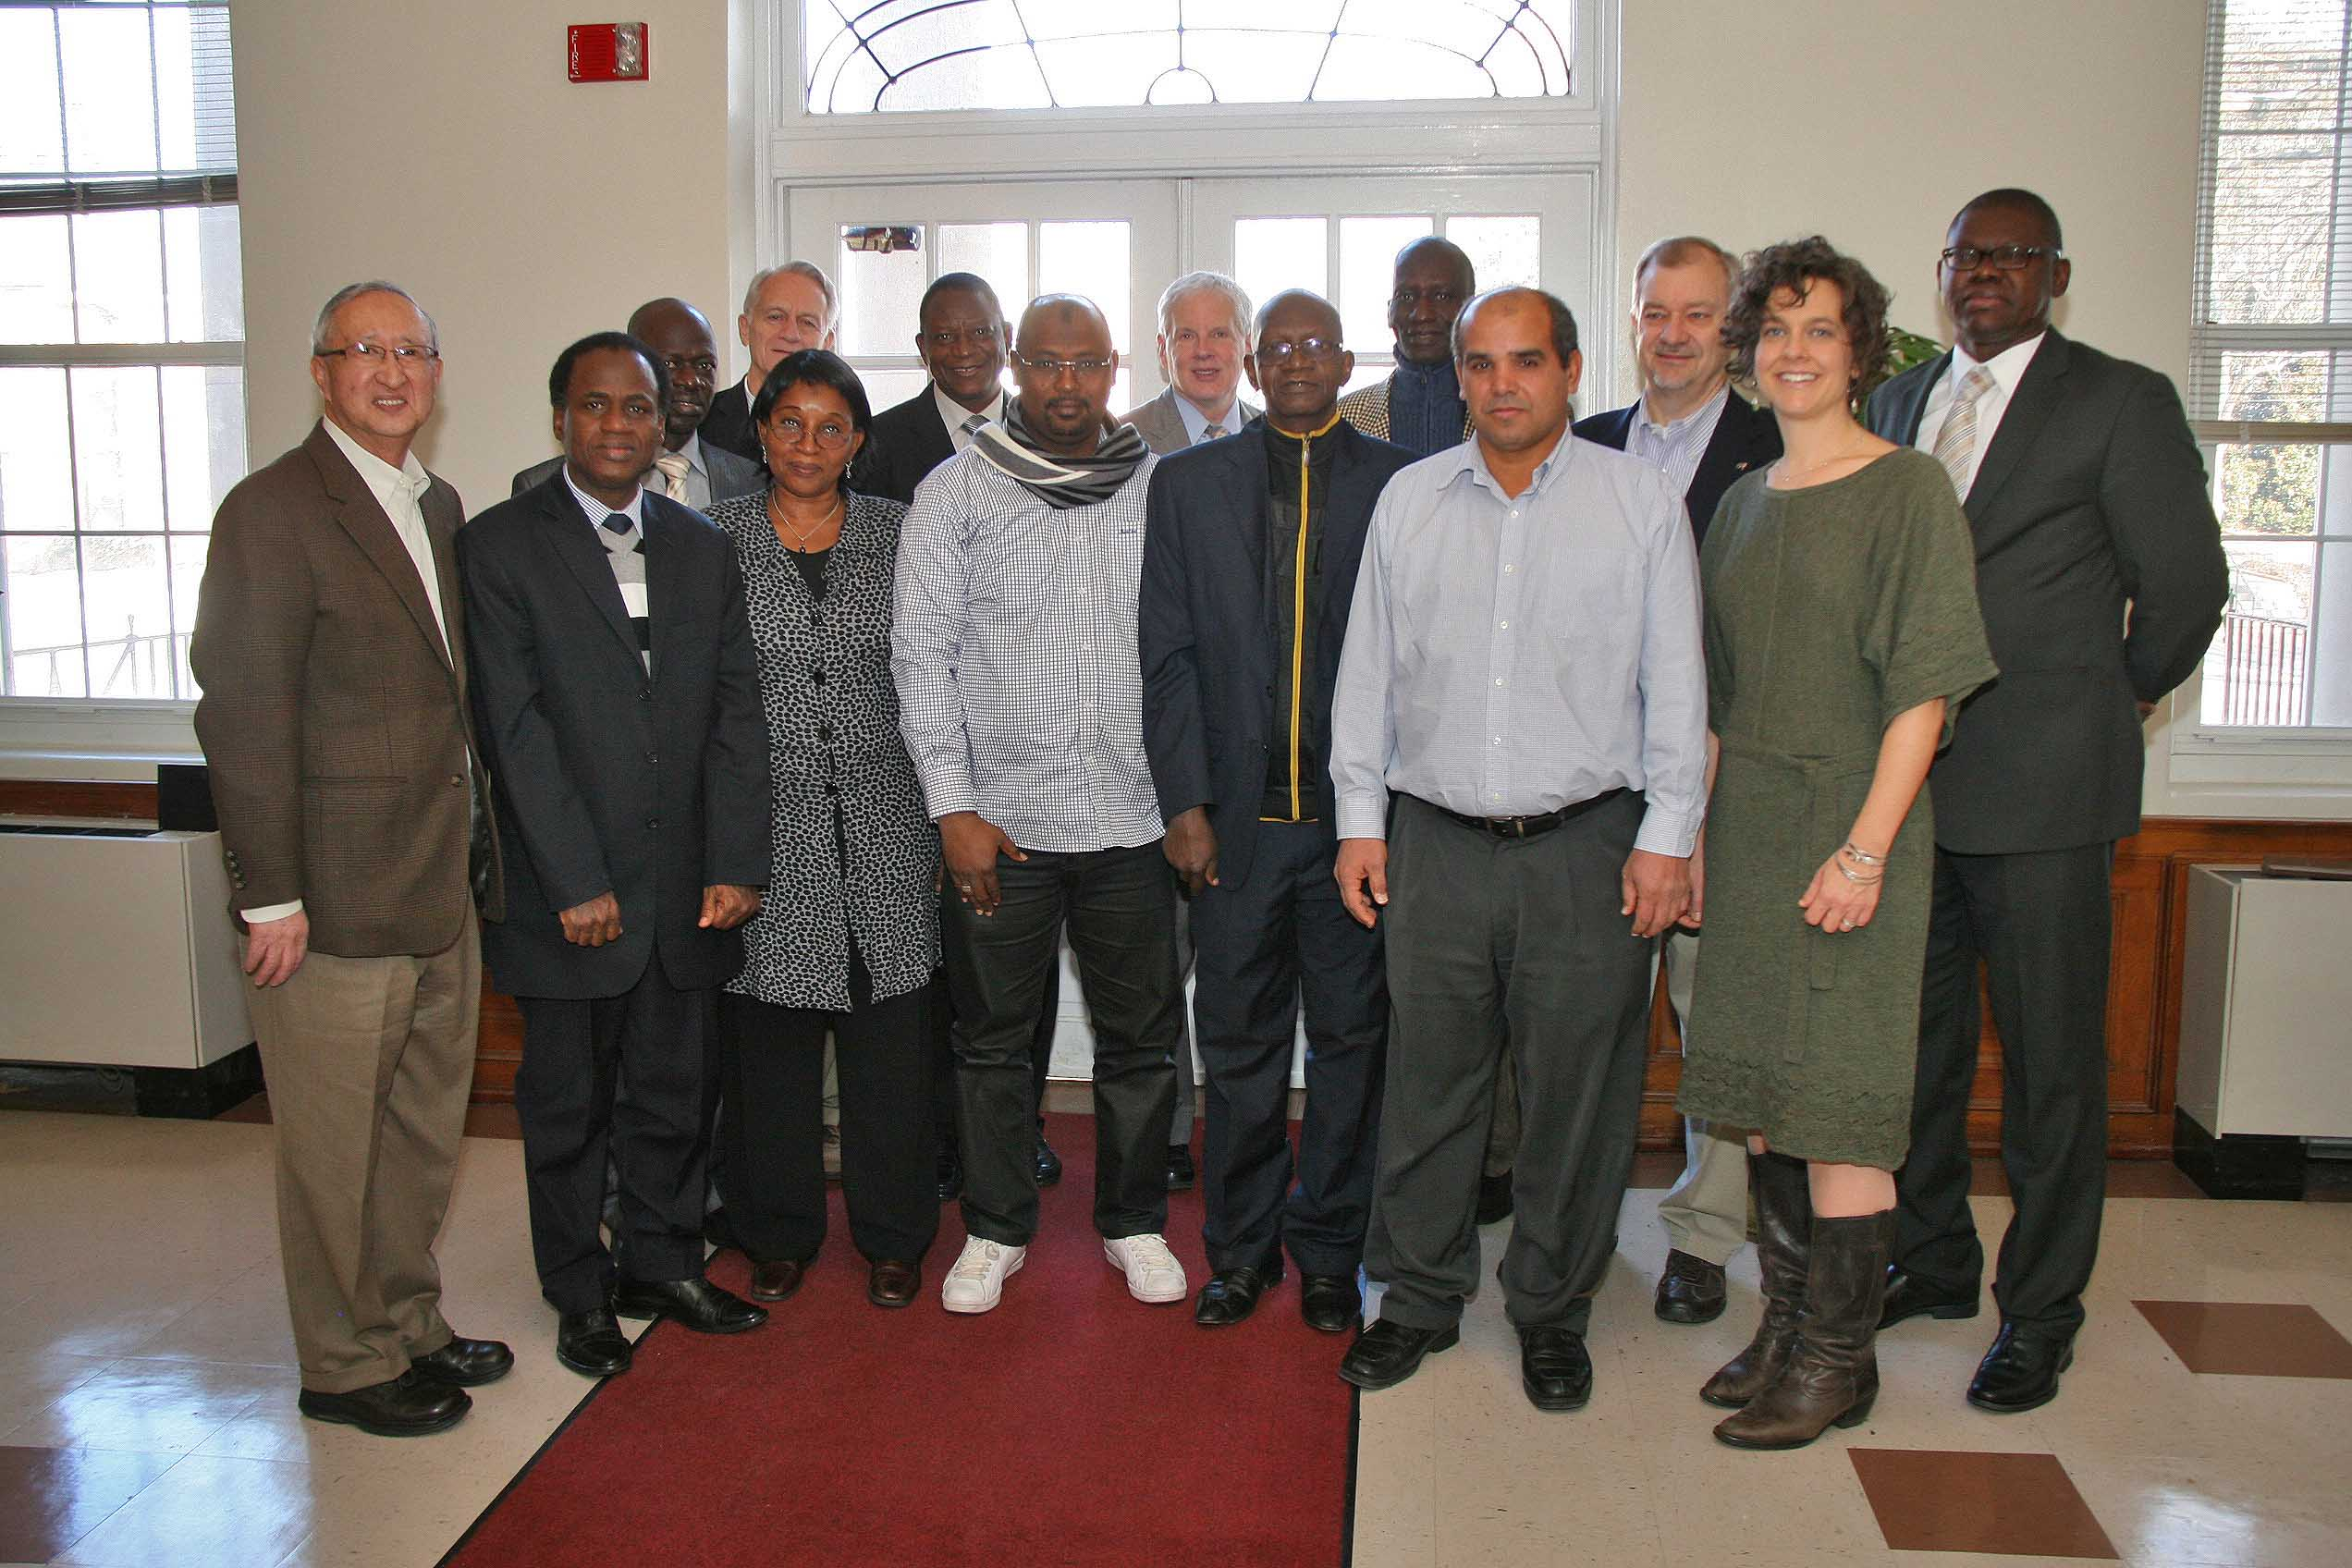 Ed Kanemasu,CAES assistant dean of international affairs and director of global programs; far left; and other UGA administrators hosted a delegation of animal health and agricultural experts from Mali in Athens from Wednesday to Friday this week. The visit represented the reestablishment of a relationship between the UGA College of Agricultural and Environmental Sciences  and the Malian government that started in 2006, but was interrupted when a coup toppled the Malian government in March 2012.